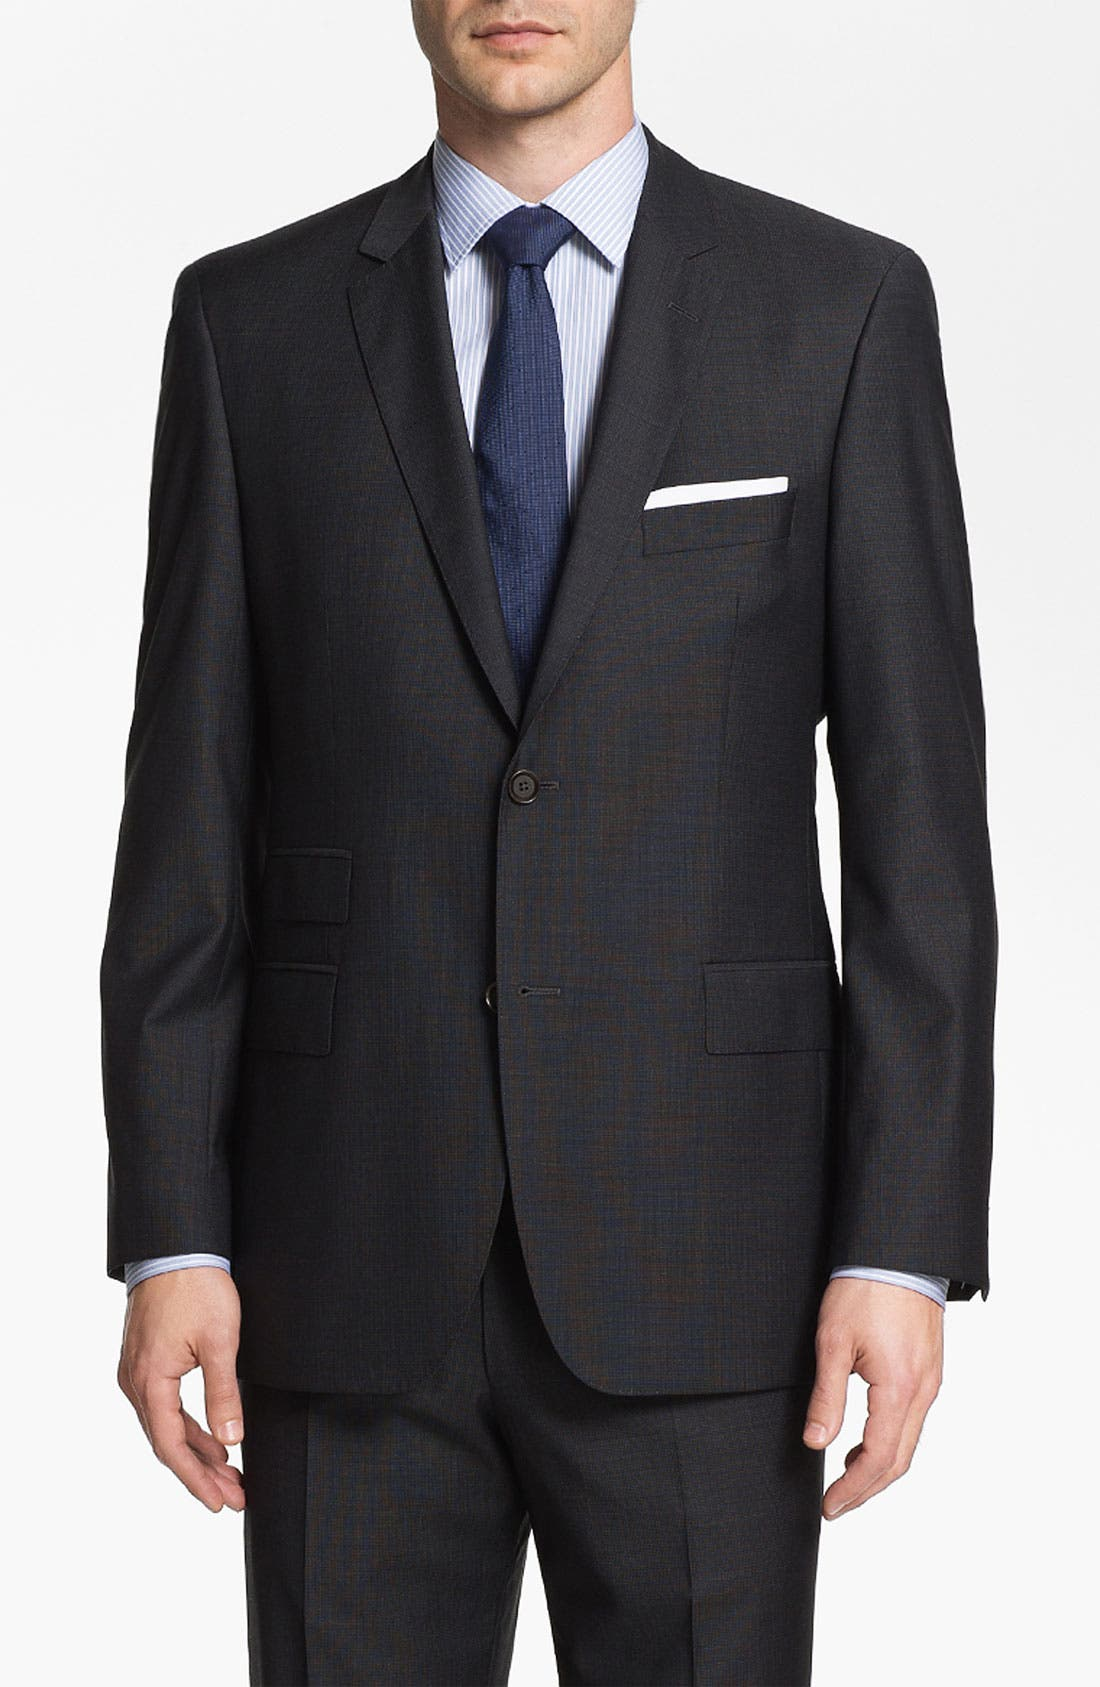 Alternate Image 1 Selected - BOSS Black 'Edison/Power' Wool Suit